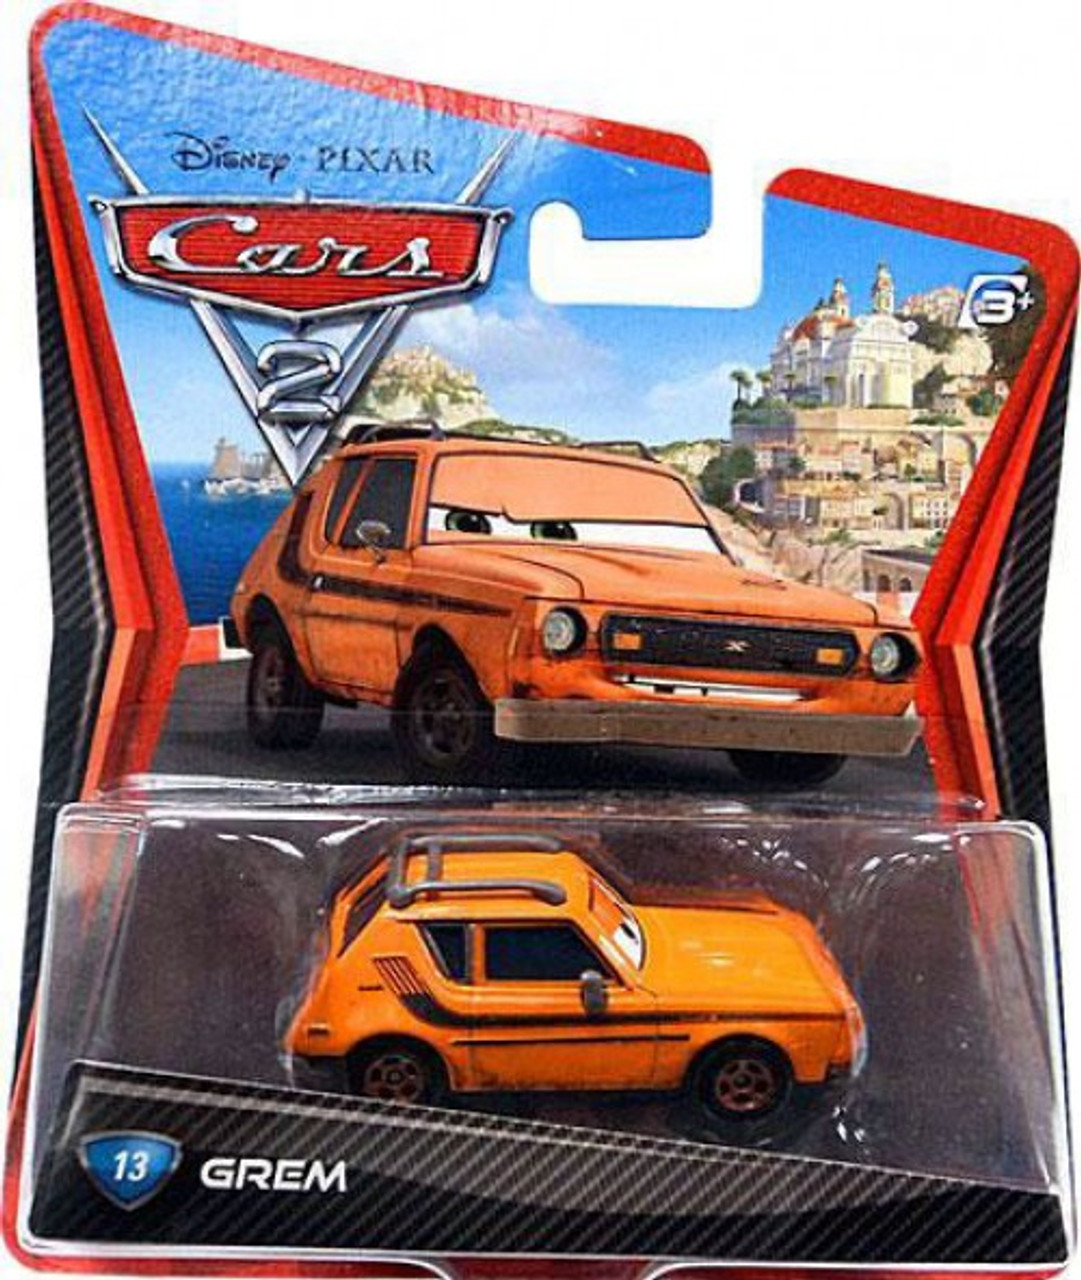 Disney Pixar Cars Cars 2 Main Series Grem 155 Diecast Car Mattel